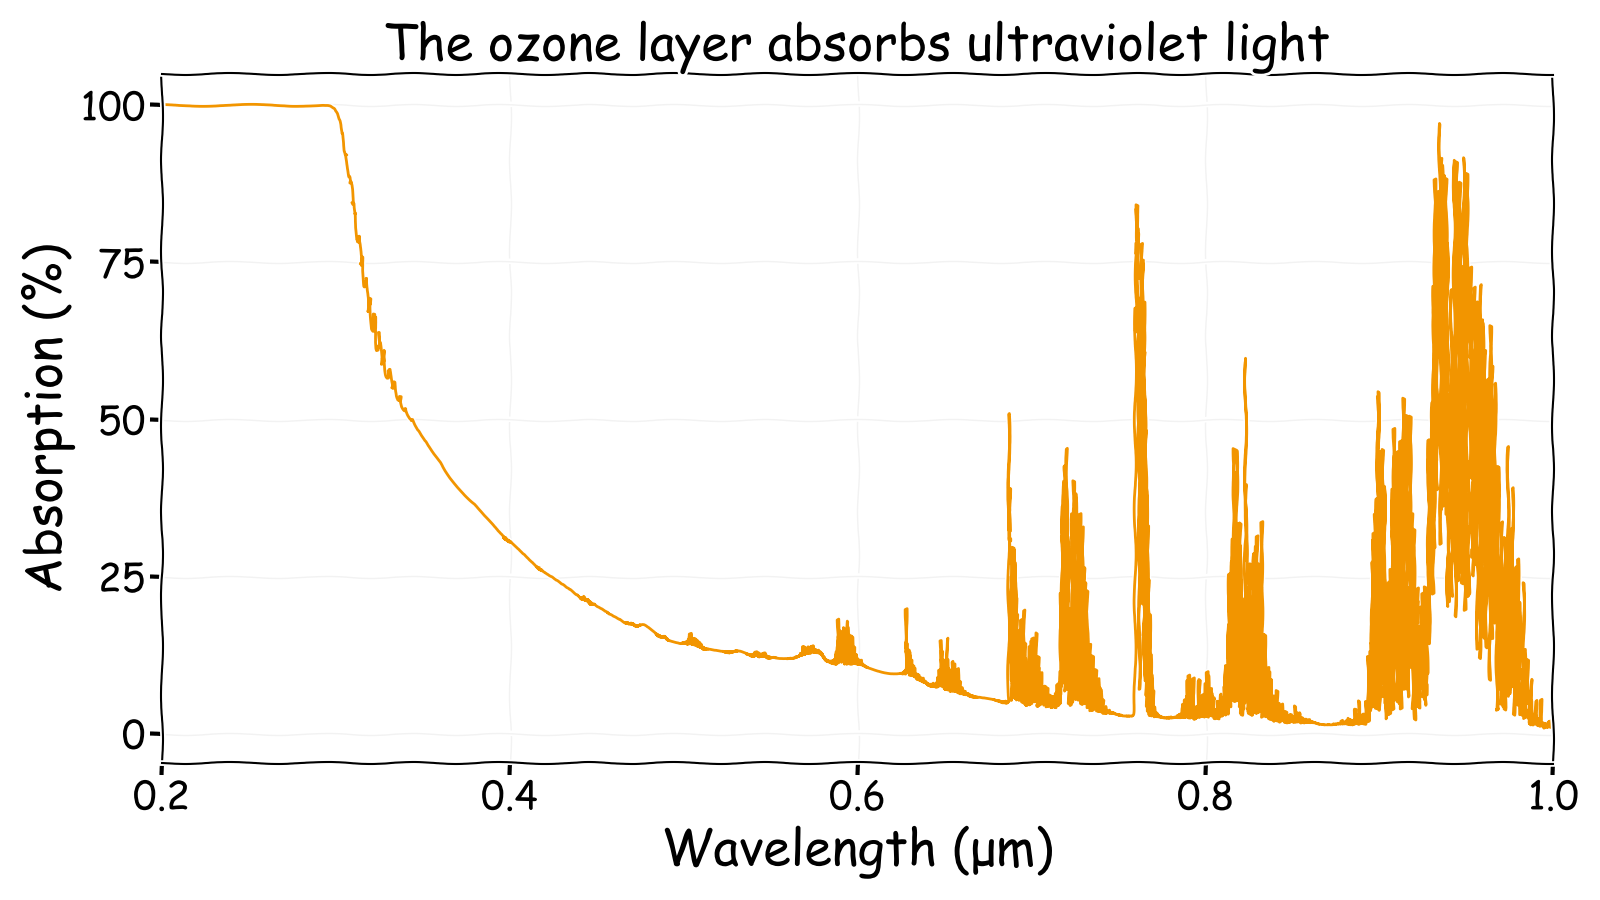 Ultraviolet to near infrared atmospheric absorption spectrum